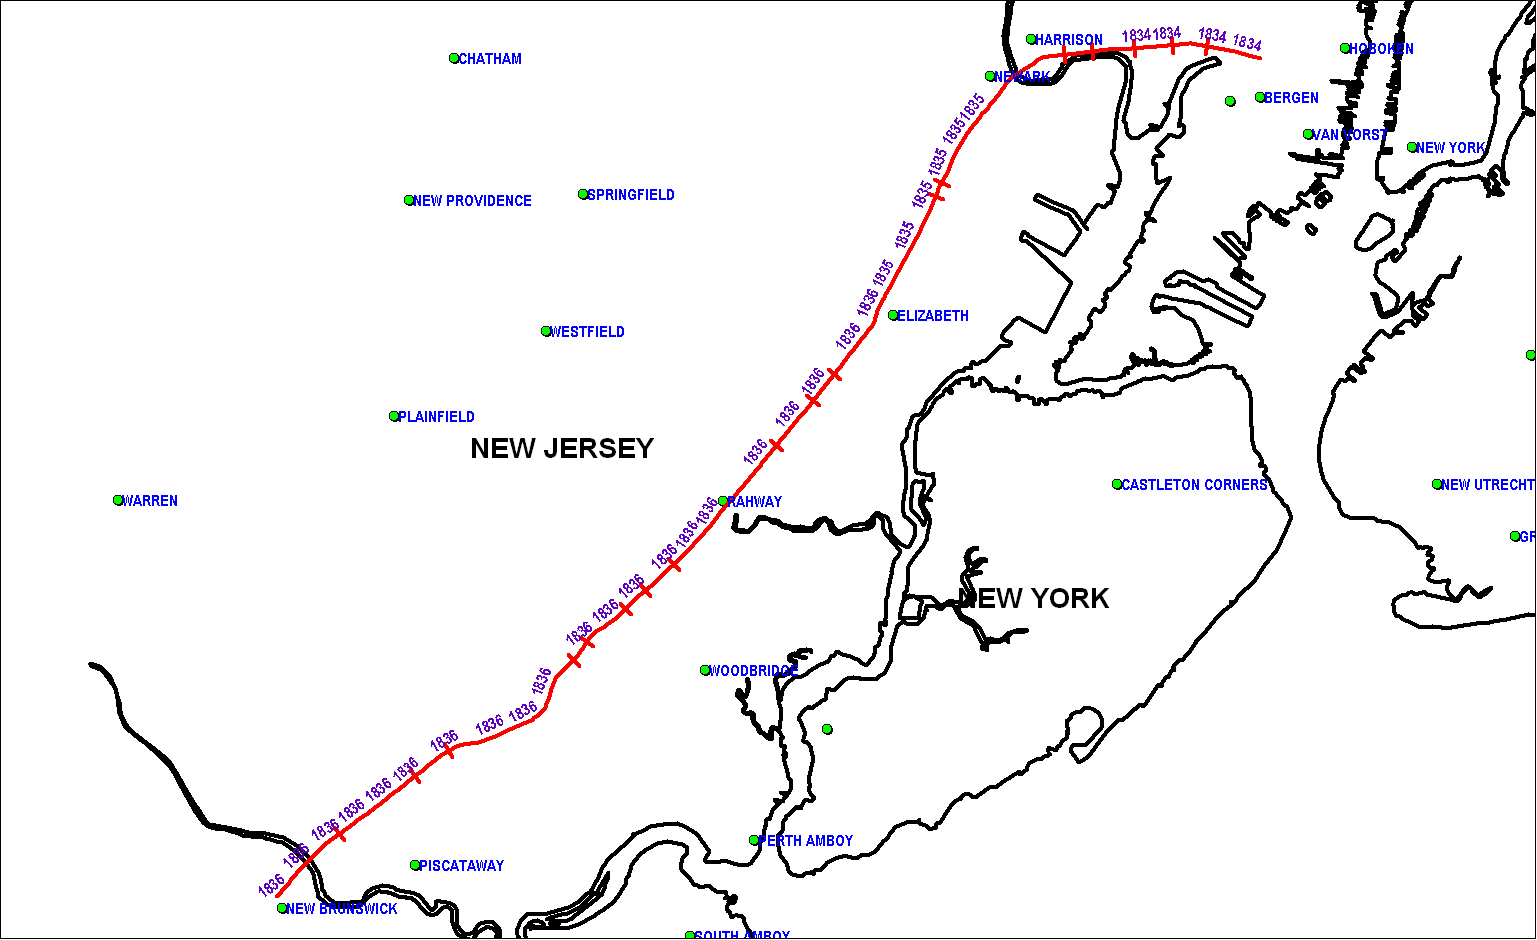 New Jersey Railroad & Transportation Co map as of 1850